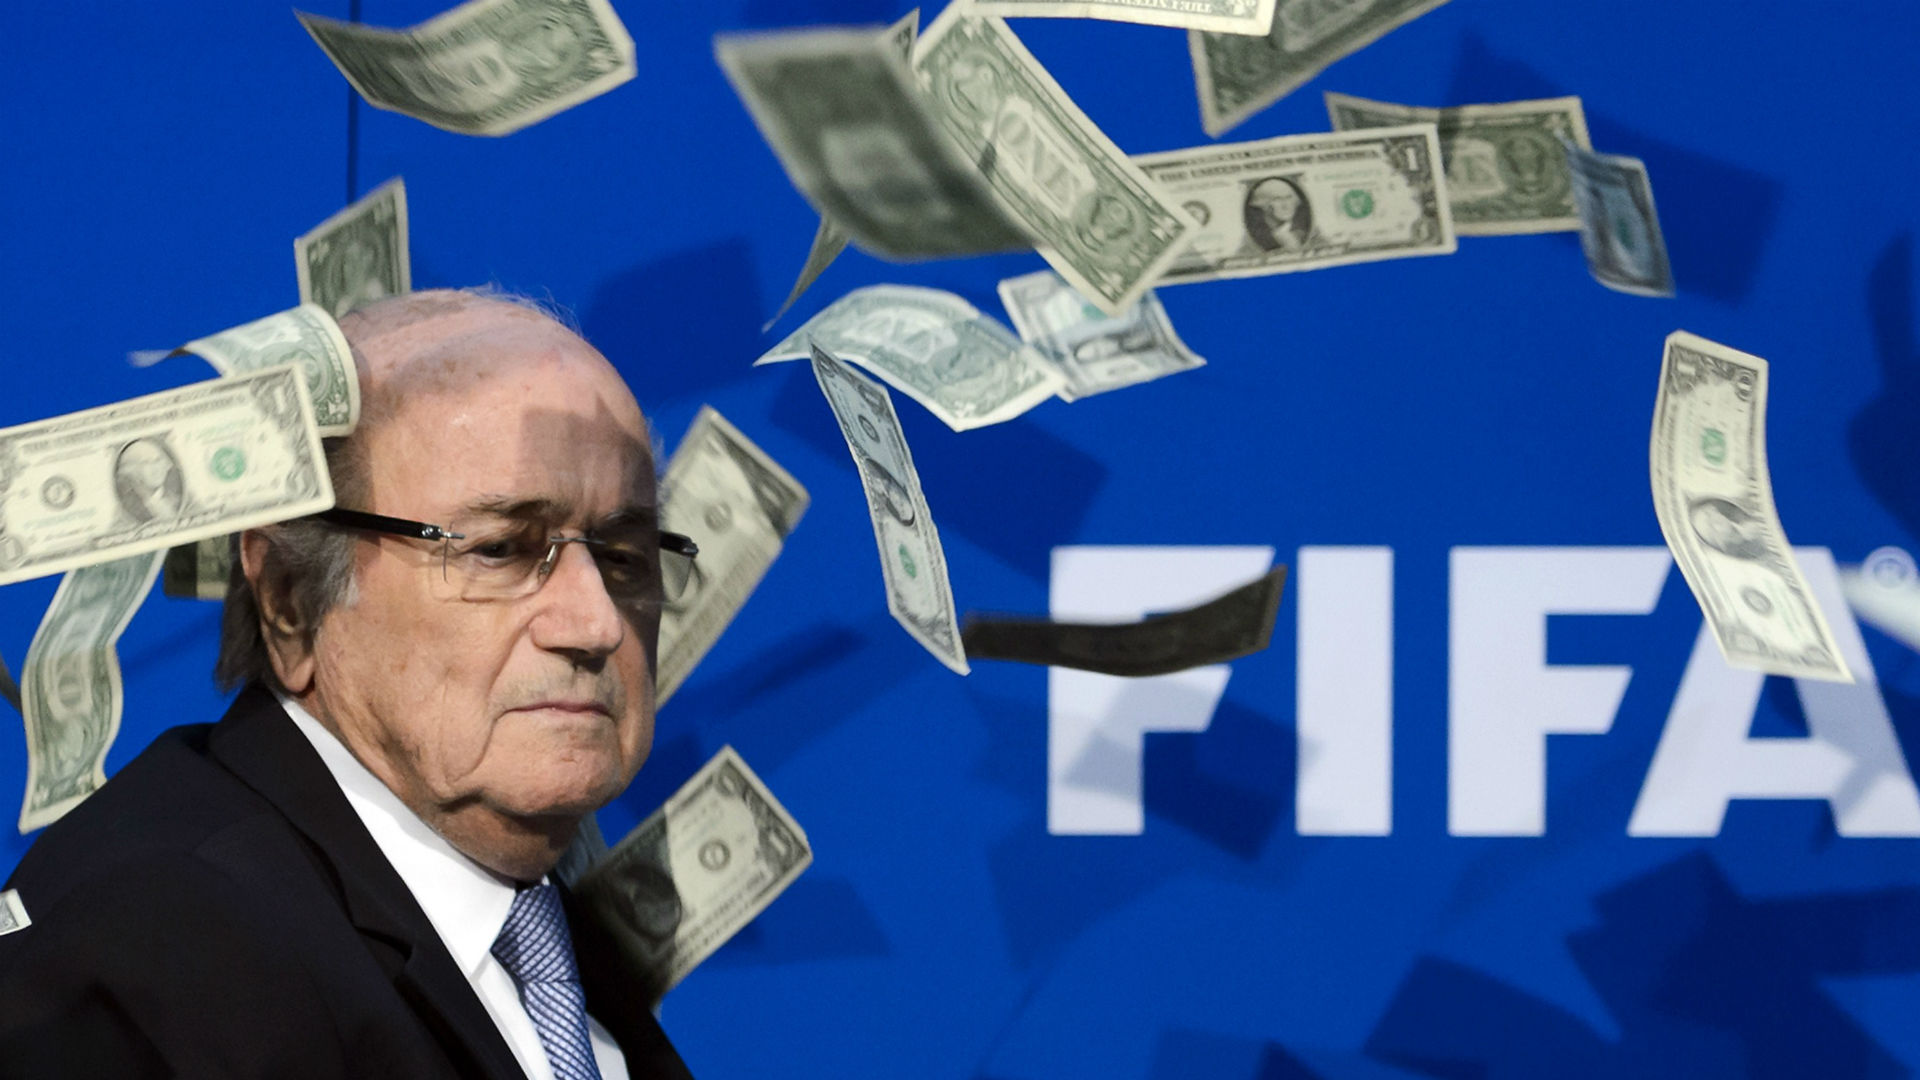 Sepp Blatter money thrown at Fifa press conference